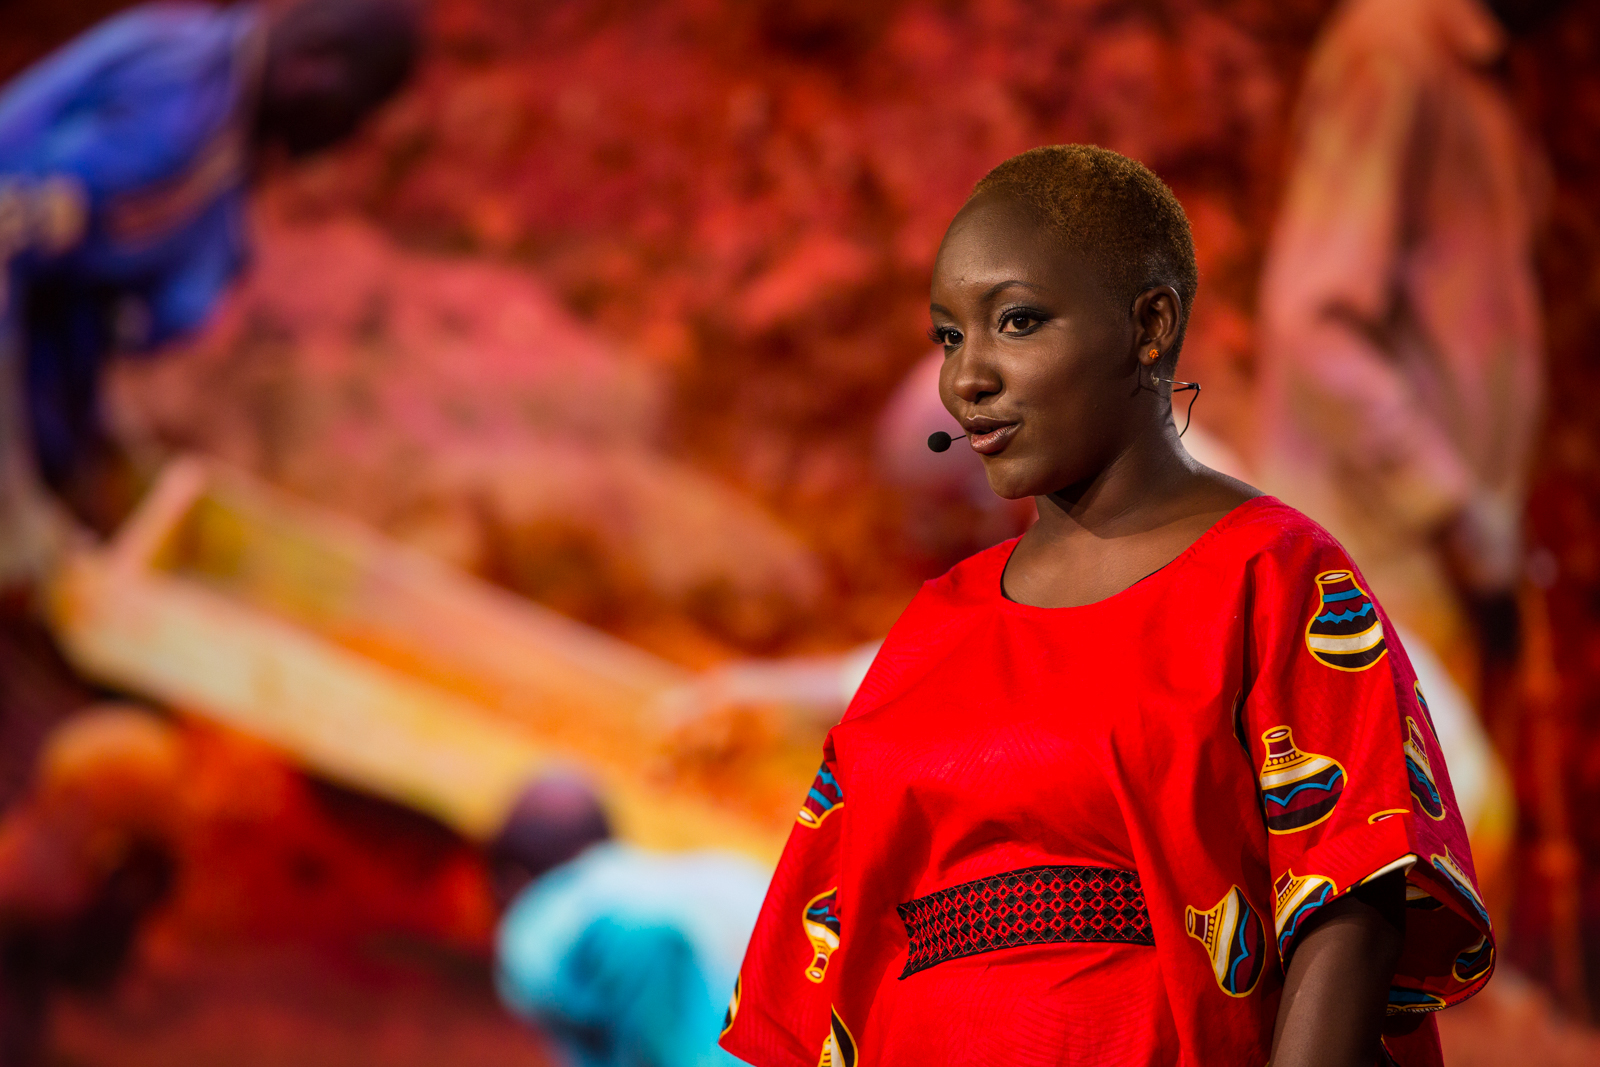 Majala Mlagui speaks on behalf of gem miners, who risk life and limb for the colored gems we wear -- and are rarely paid a fair price.She spoke onstage at the TED Fellows session ofTED2016, February 15-19, 2016. Photo: Ryan Lash